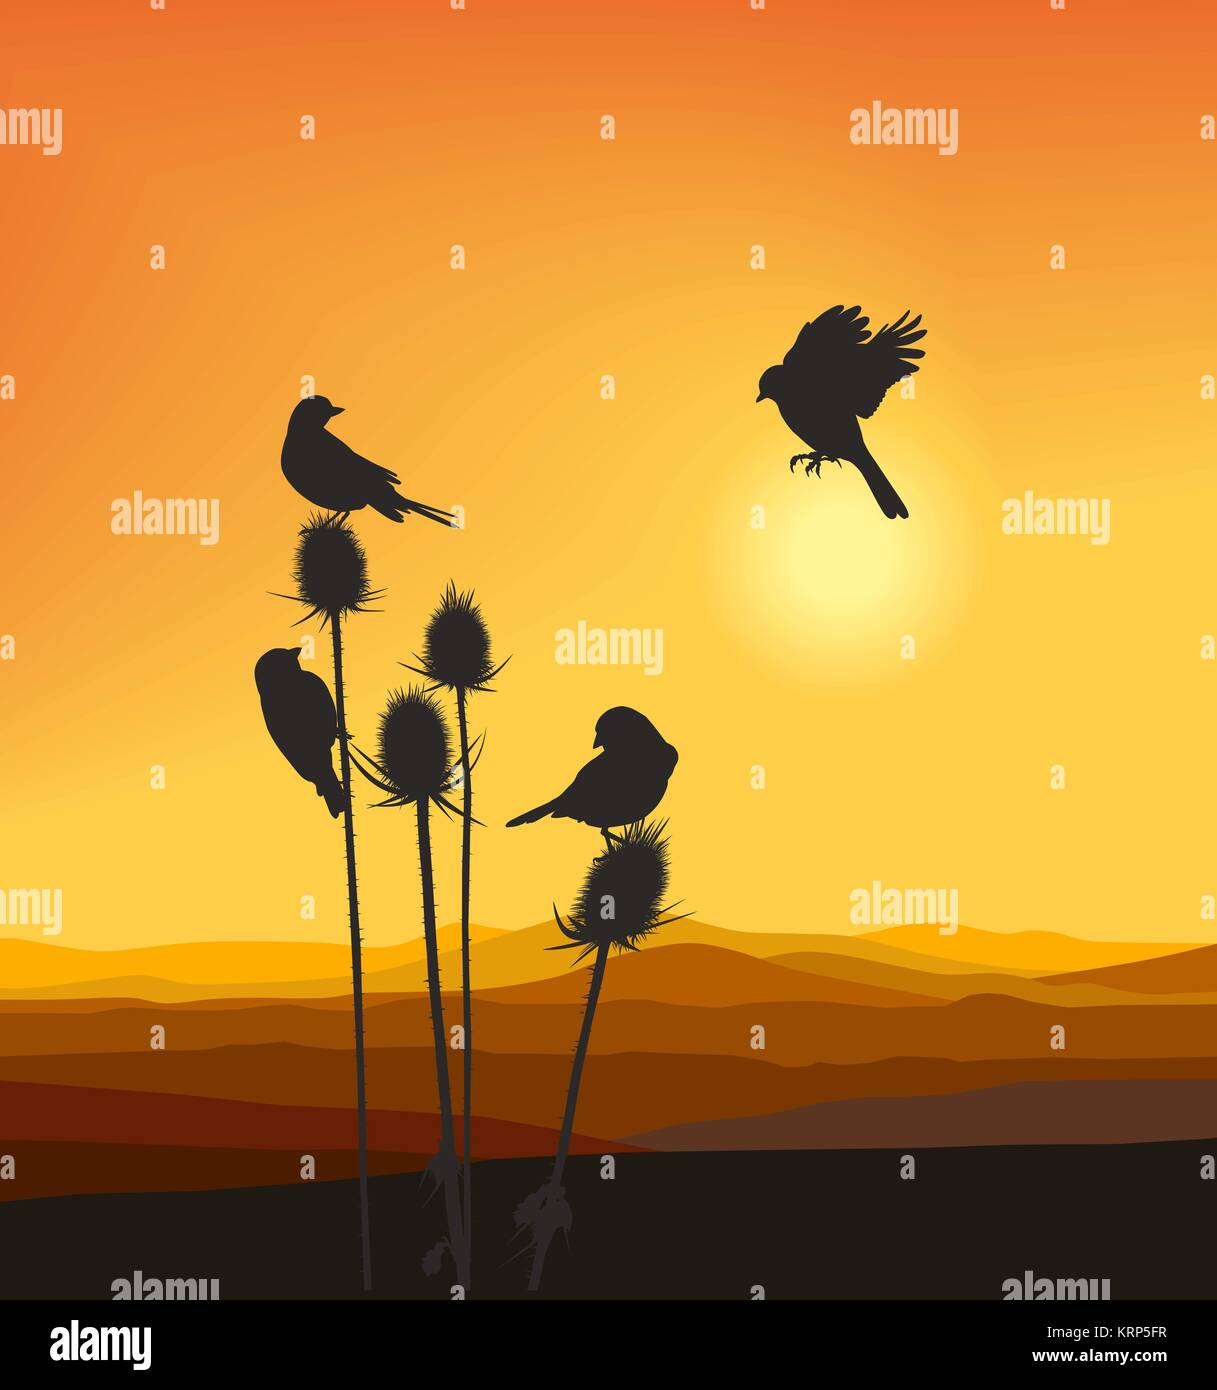 Small birds on a thistle - Stock Image